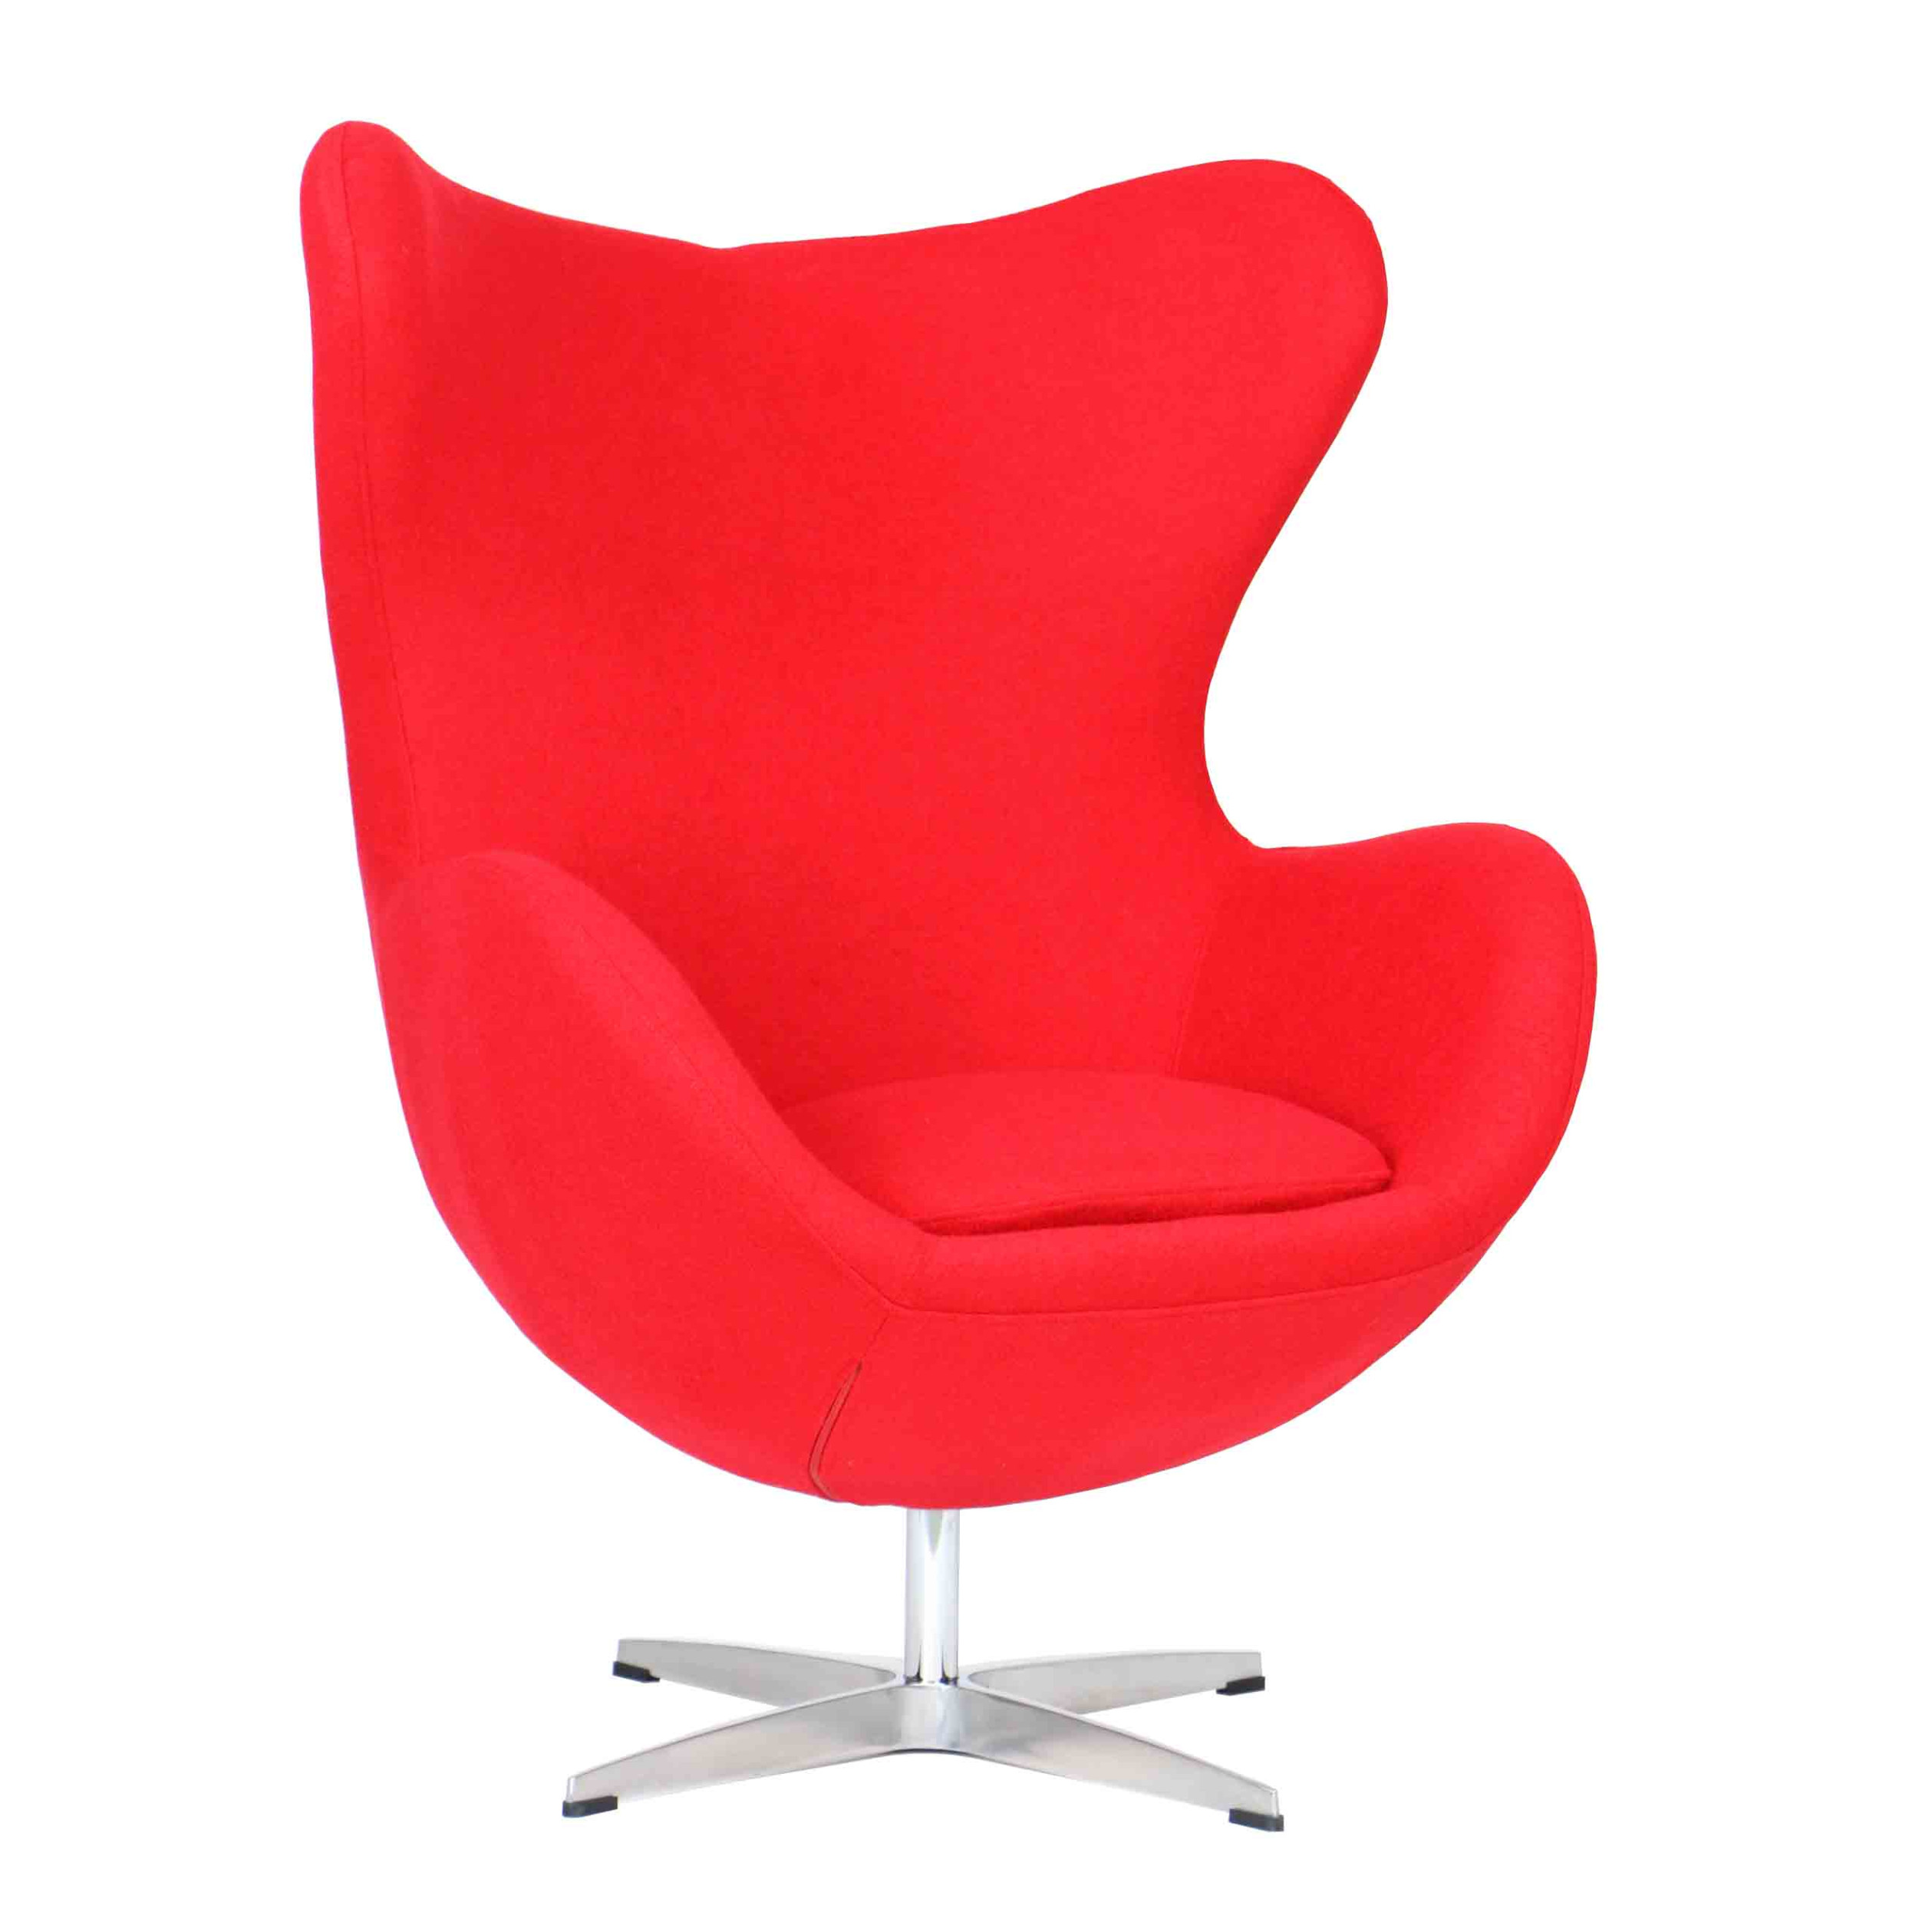 Egg Chair Prices Designer Replica Egg Chair In Red Furniture And Home Décor